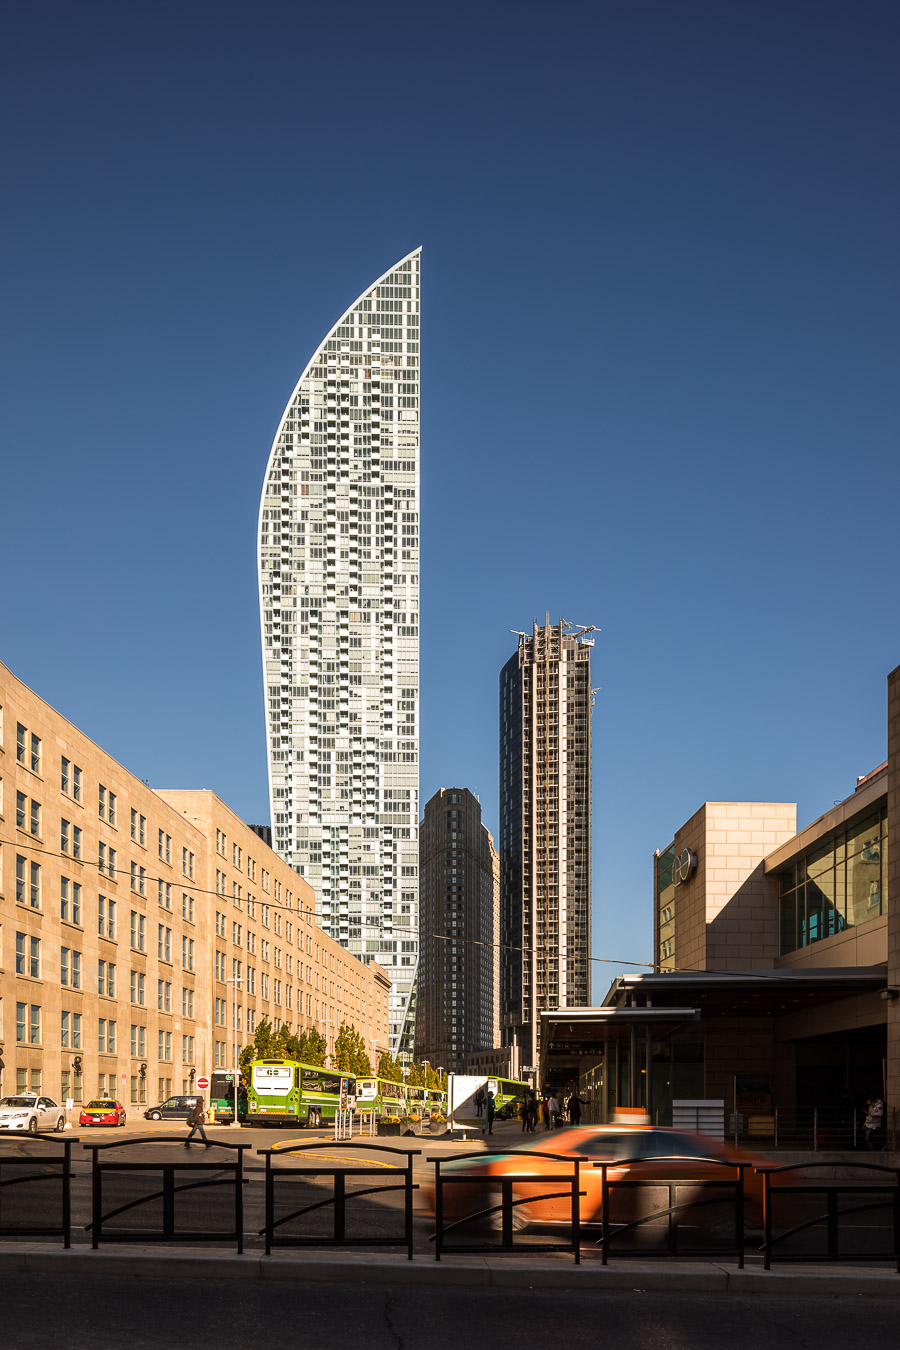 039-Libeskind L Tower Exteriors-Edit